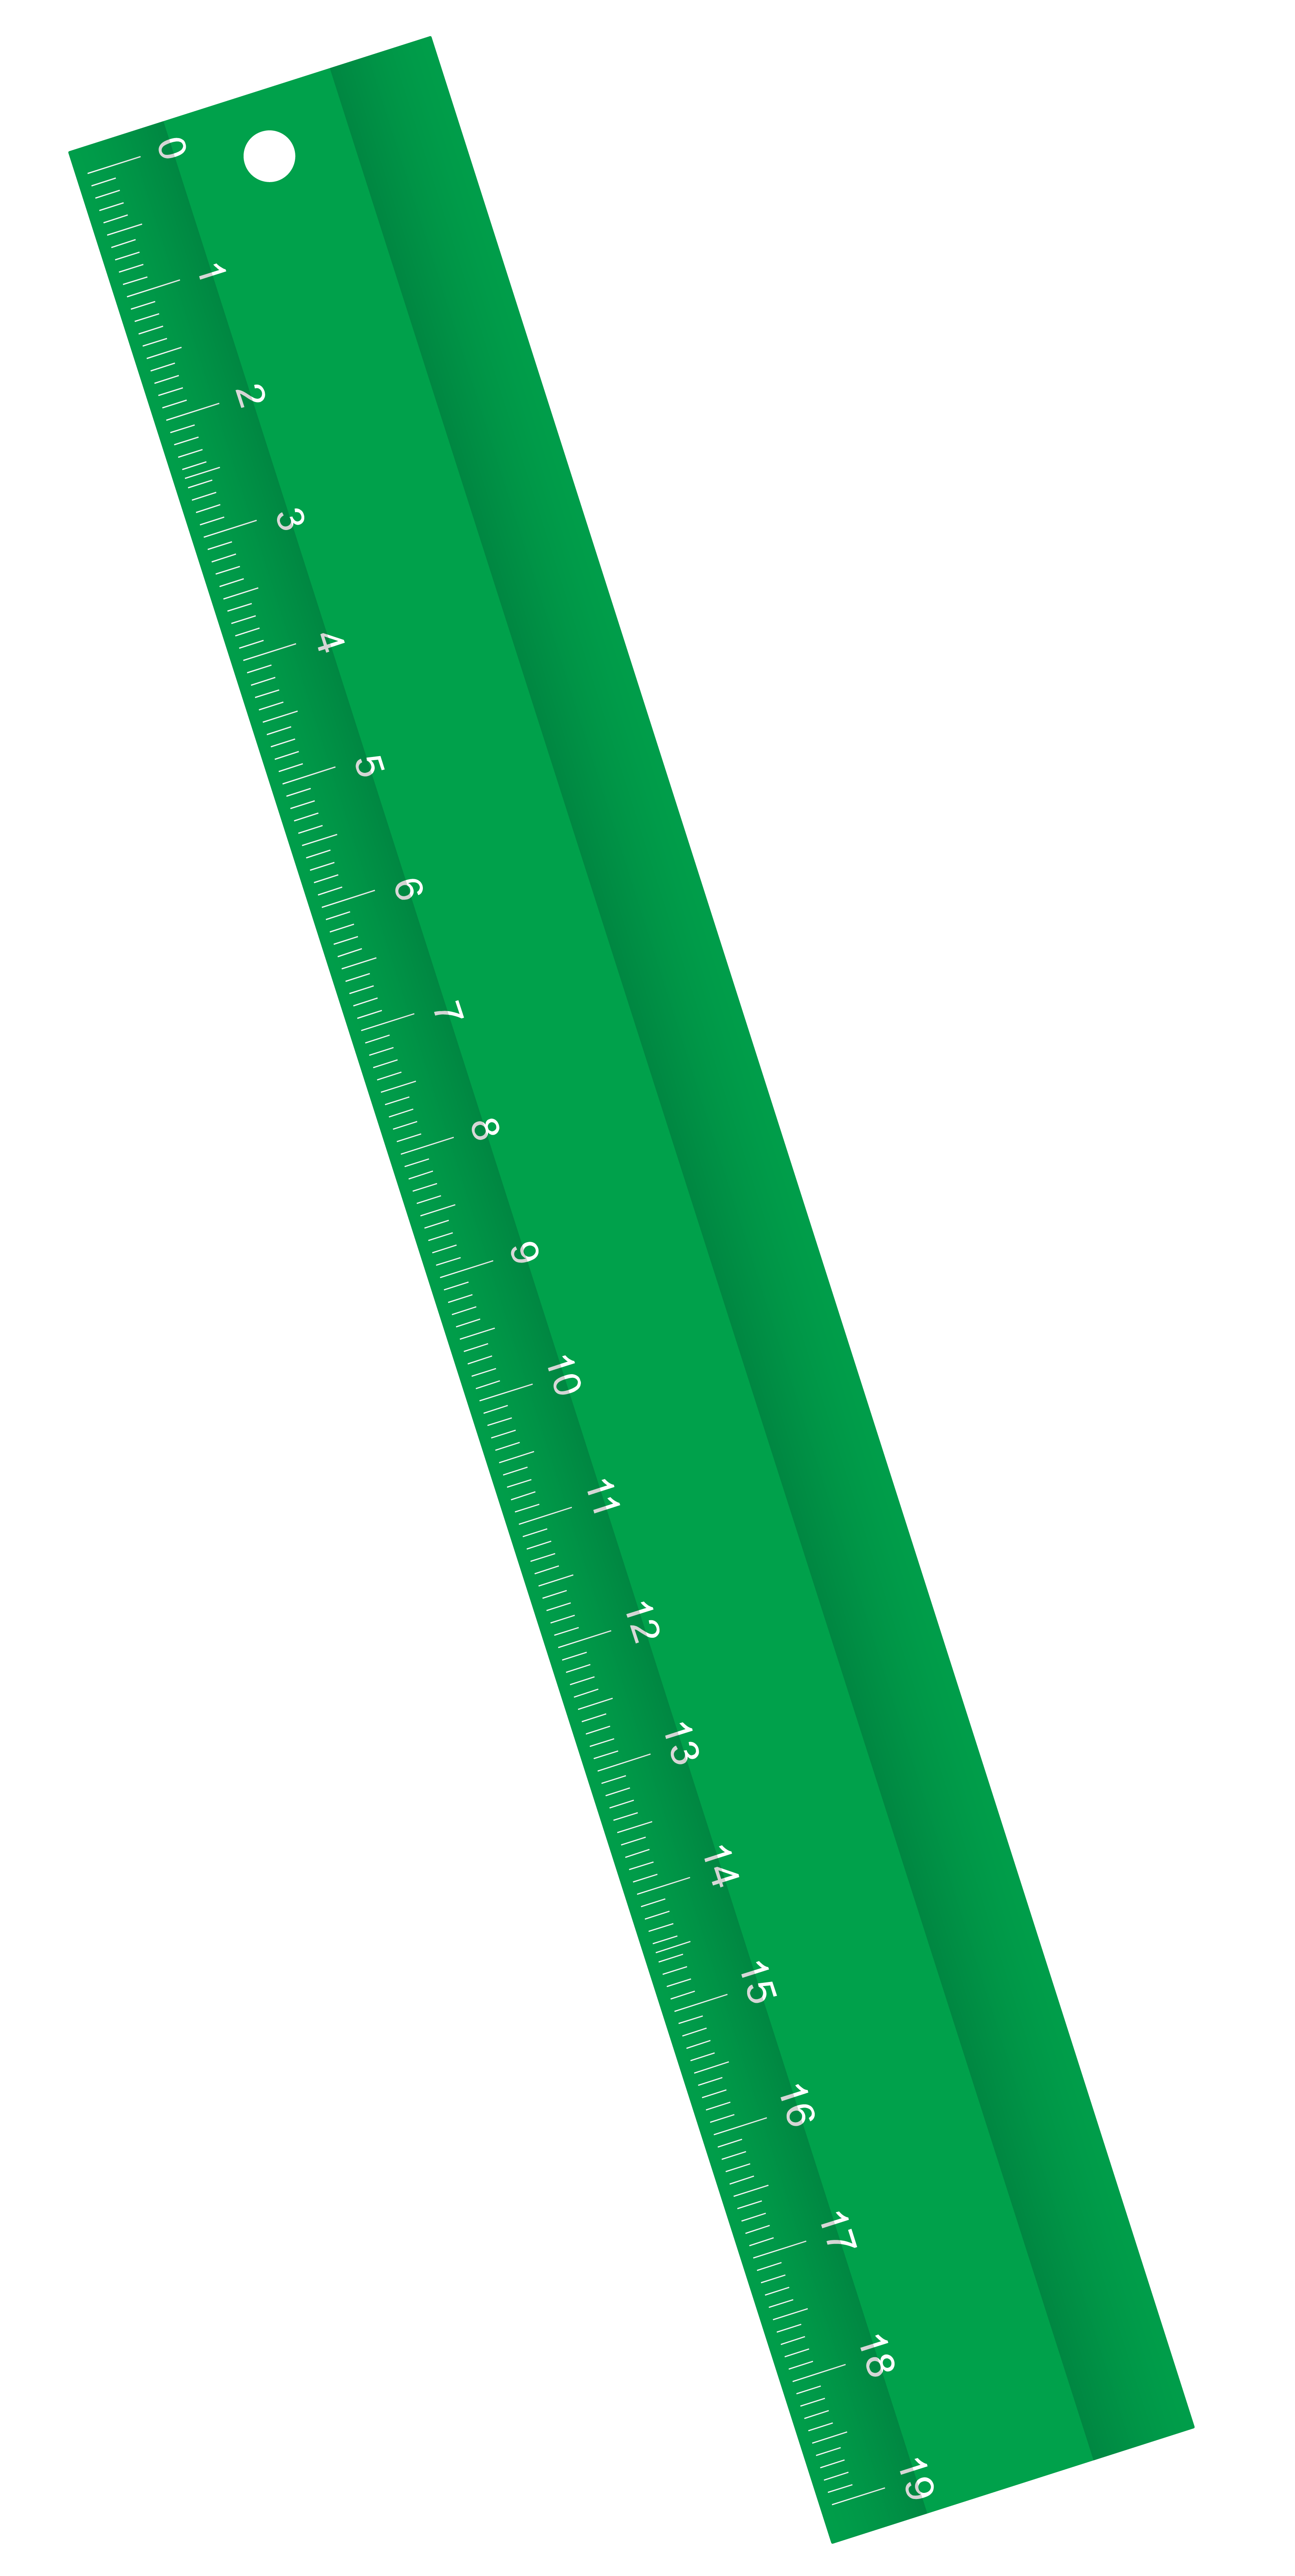 Ruler clipart png. Green image gallery yopriceville